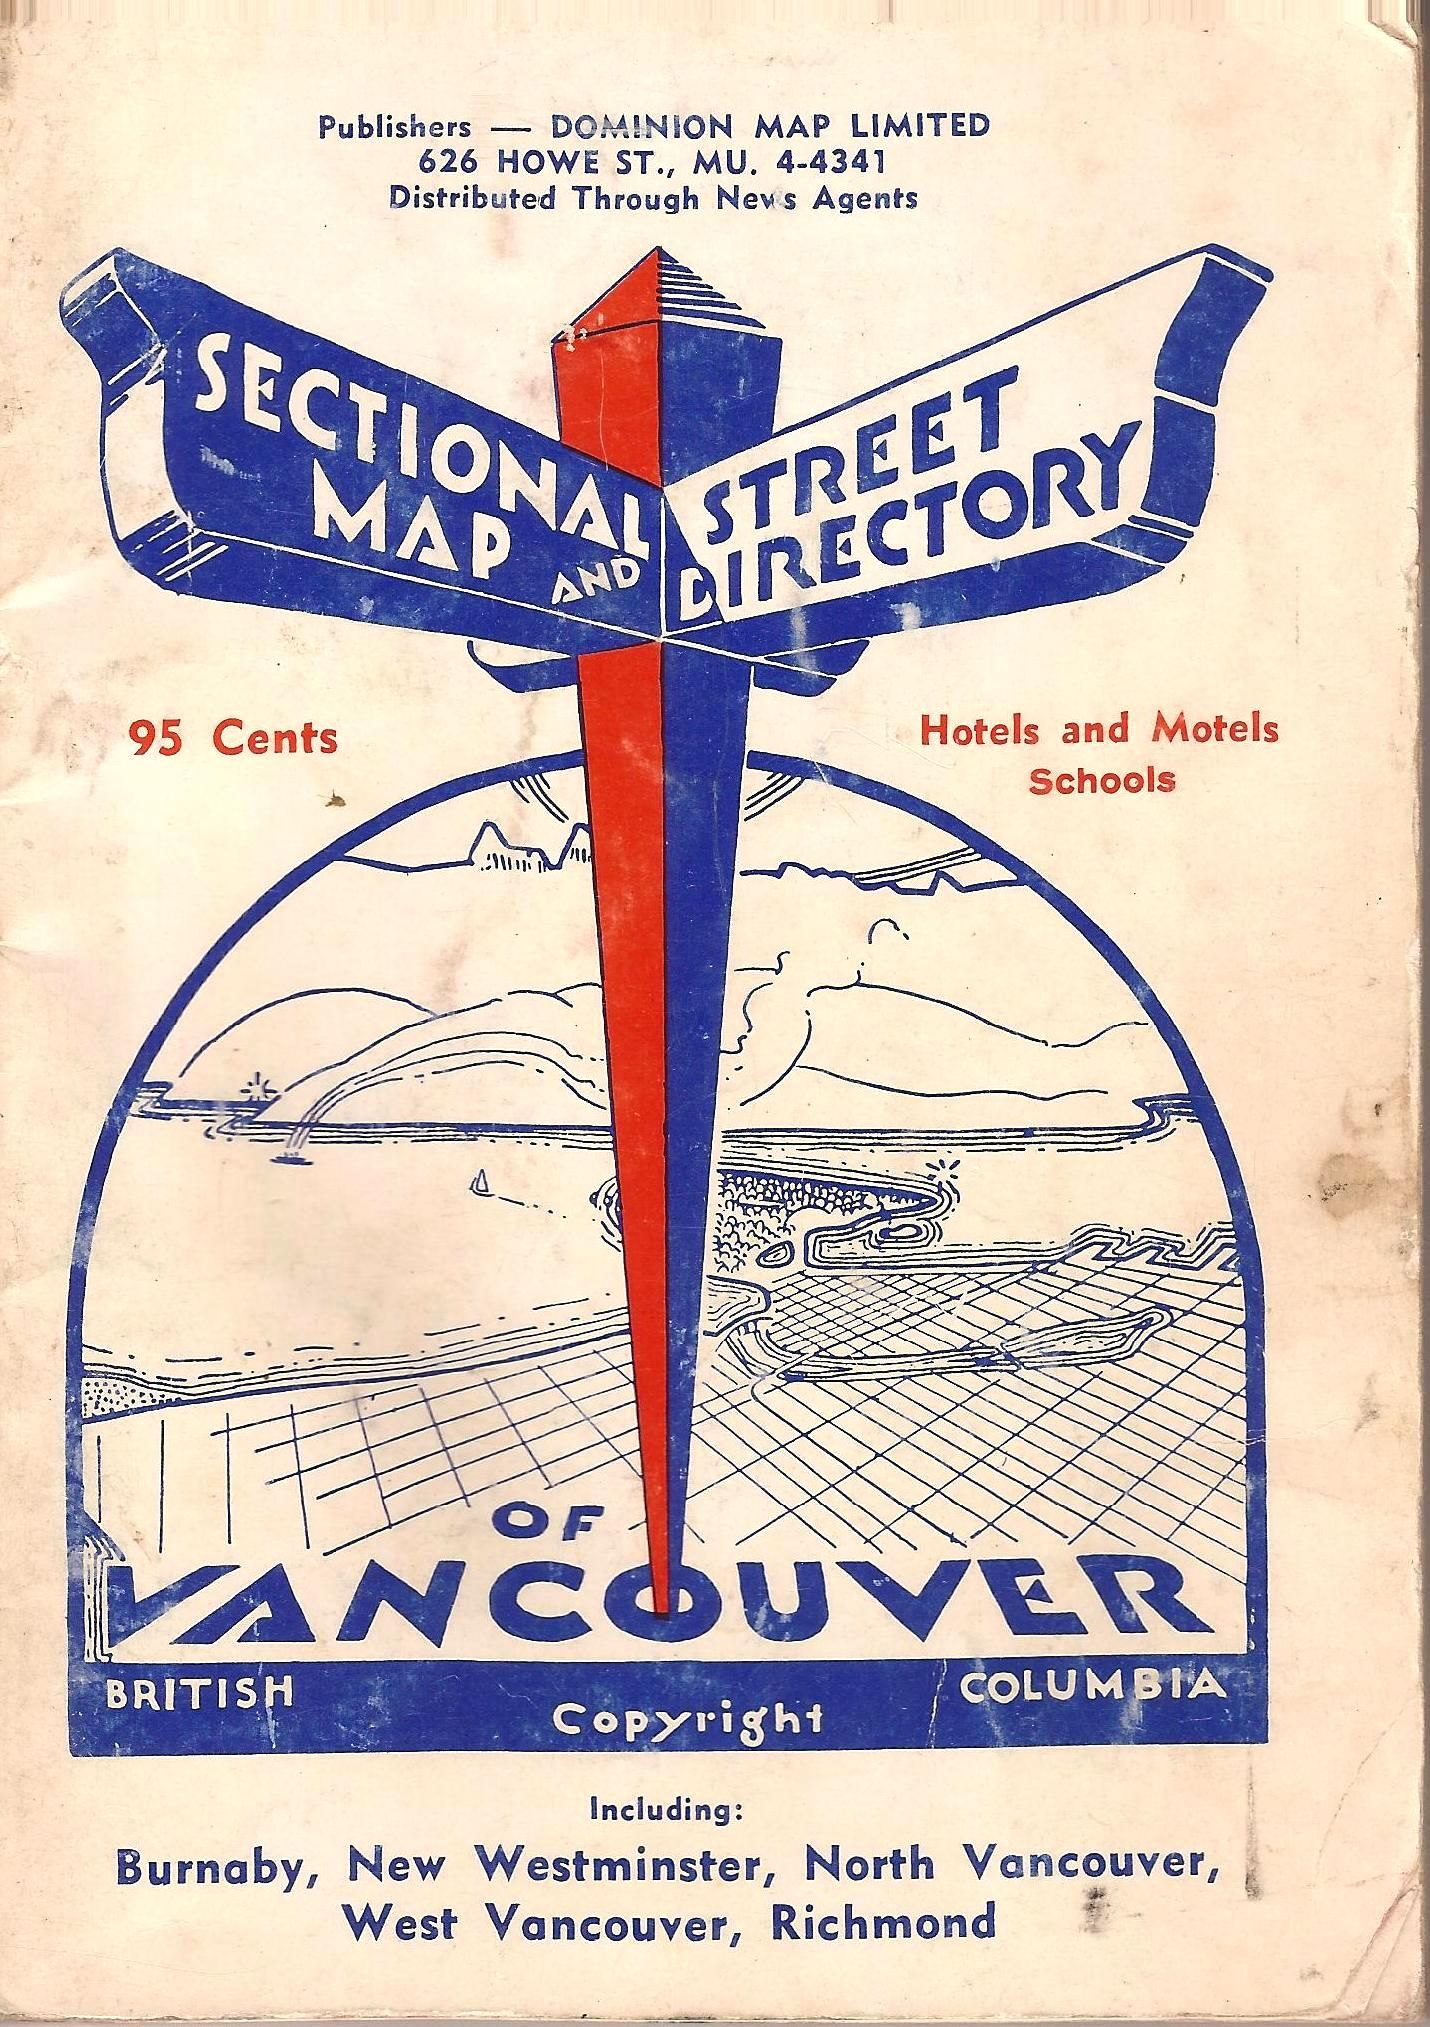 This turn-of-the-1970s pocket atlas of Vancouver and area comes from my own bookshelf. It's a bit bland design-wise, but it was functional,…